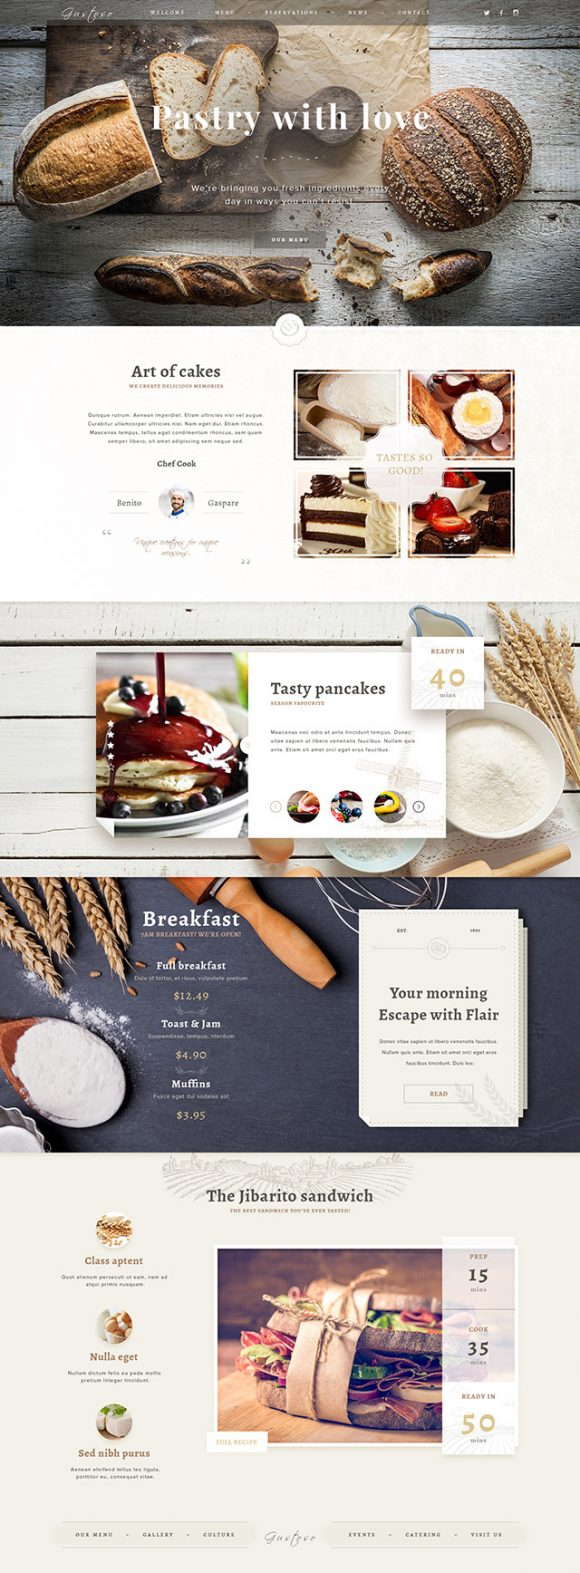 Bakery PSD website template - Ful preview